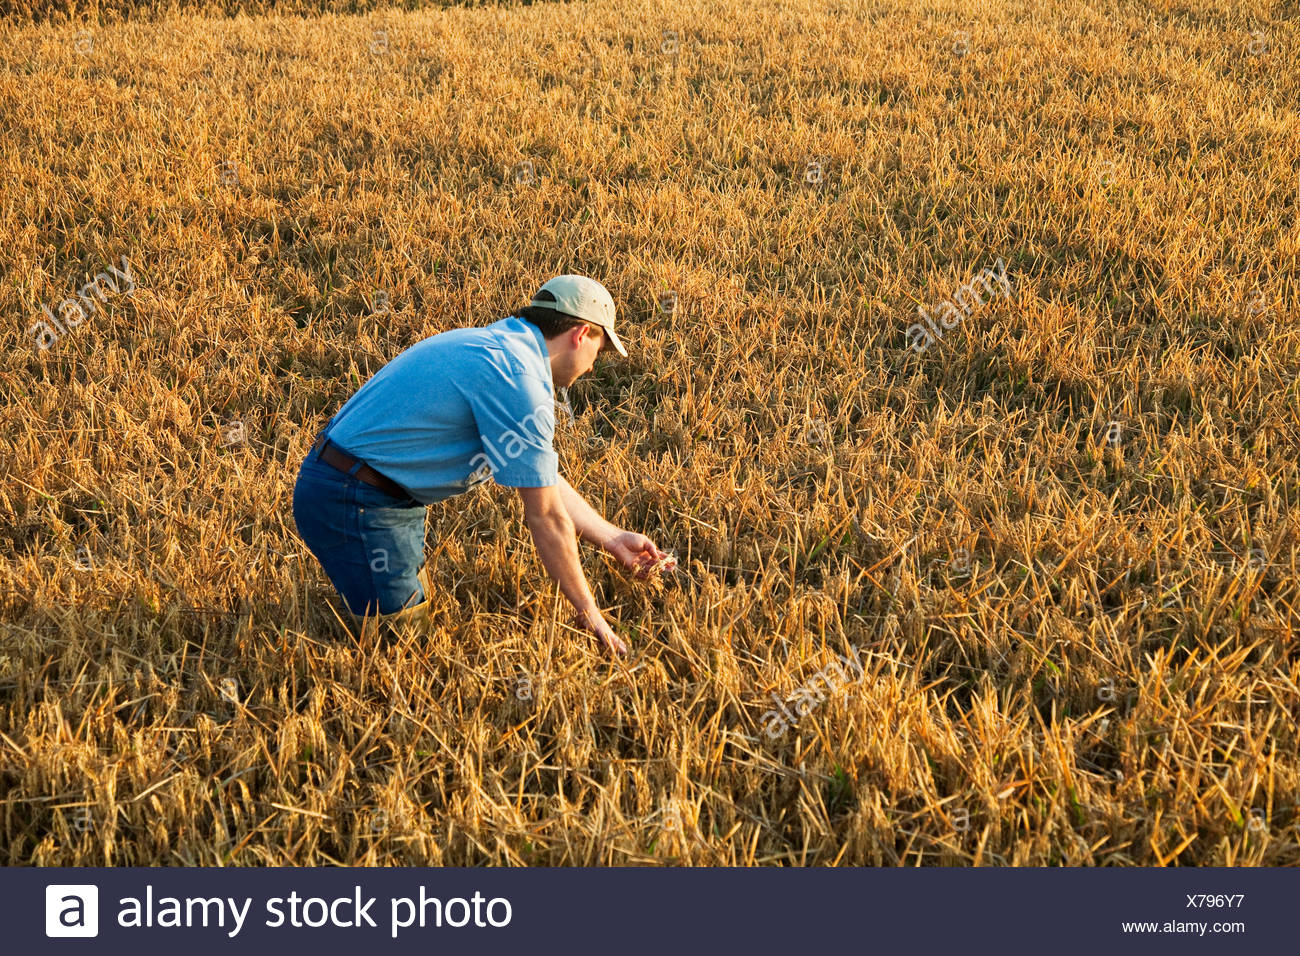 A farmer (grower) in his field inspects his nearly mature rice crop in order to determine when the harvest will begin / Arkansas - Stock Image